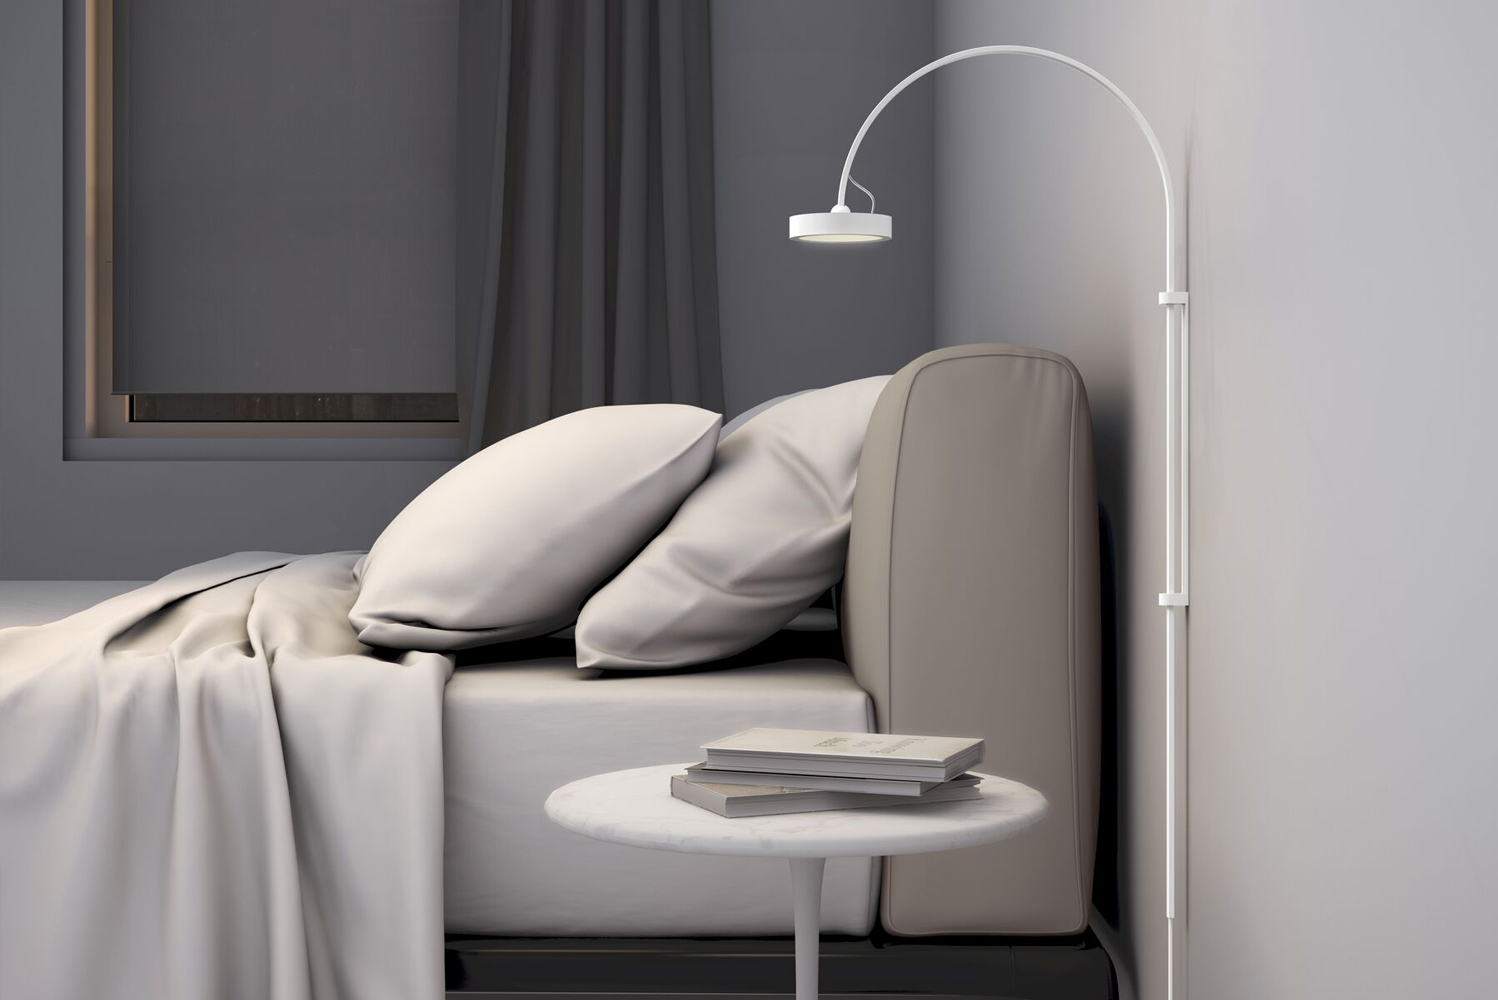 SONNEMAN—A Way of Light launched the new Pluck floor and wall lamps.